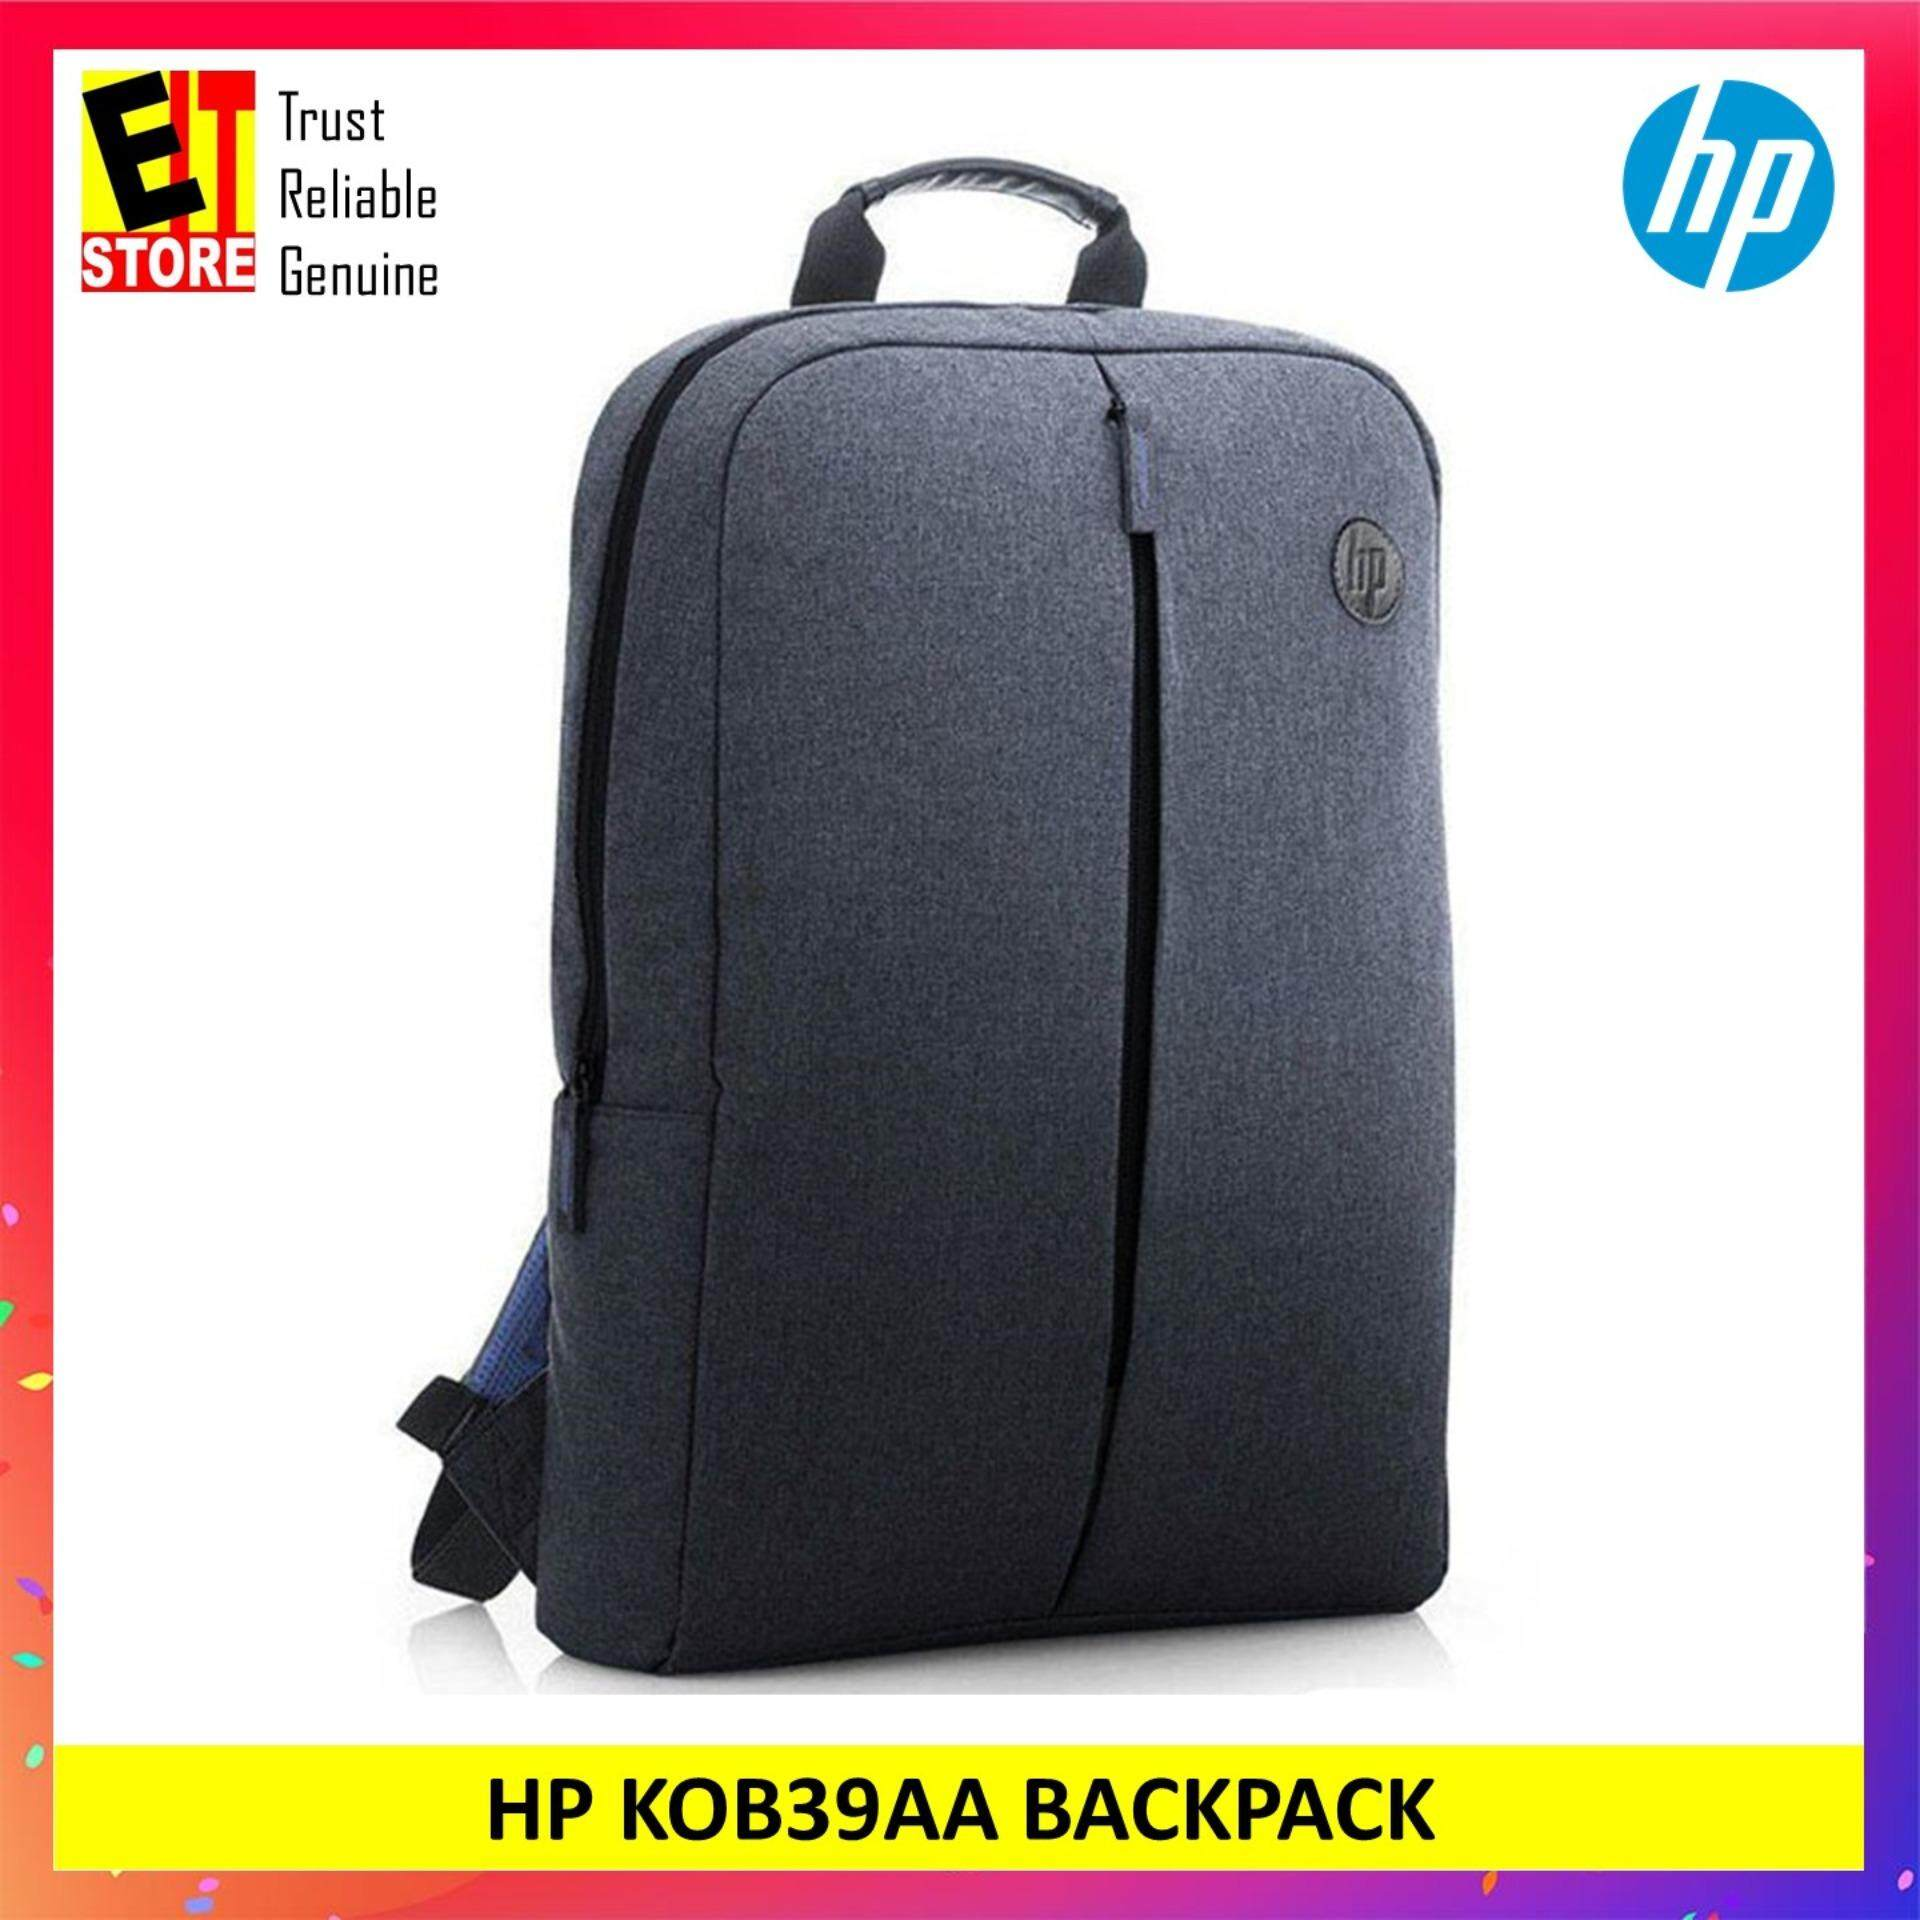 cc94dbe0330 Laptop Bags 3 - Buy Laptop Bags 3 at Best Price in Malaysia   www ...